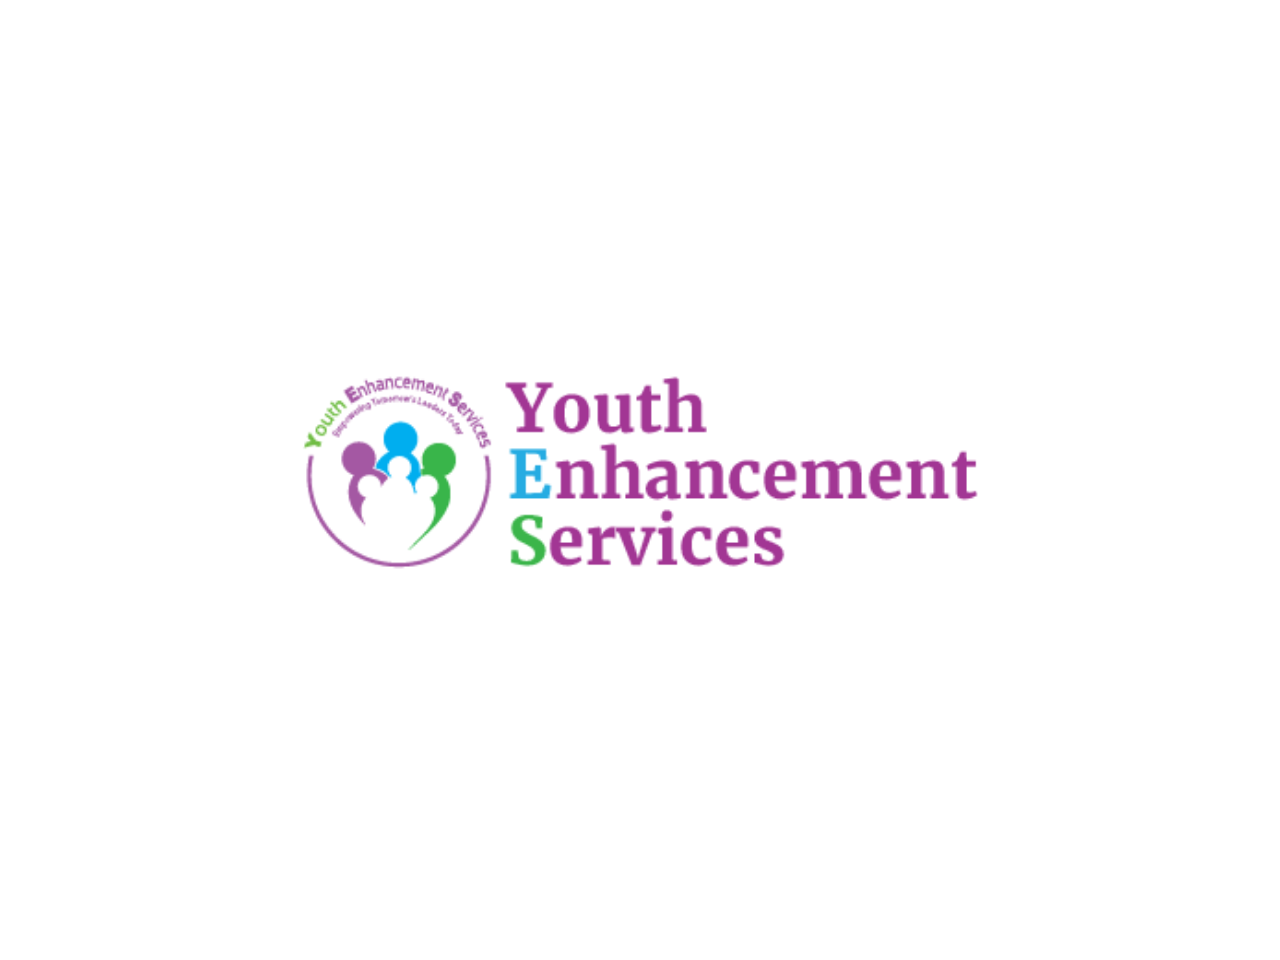 Youth Enhancement Services